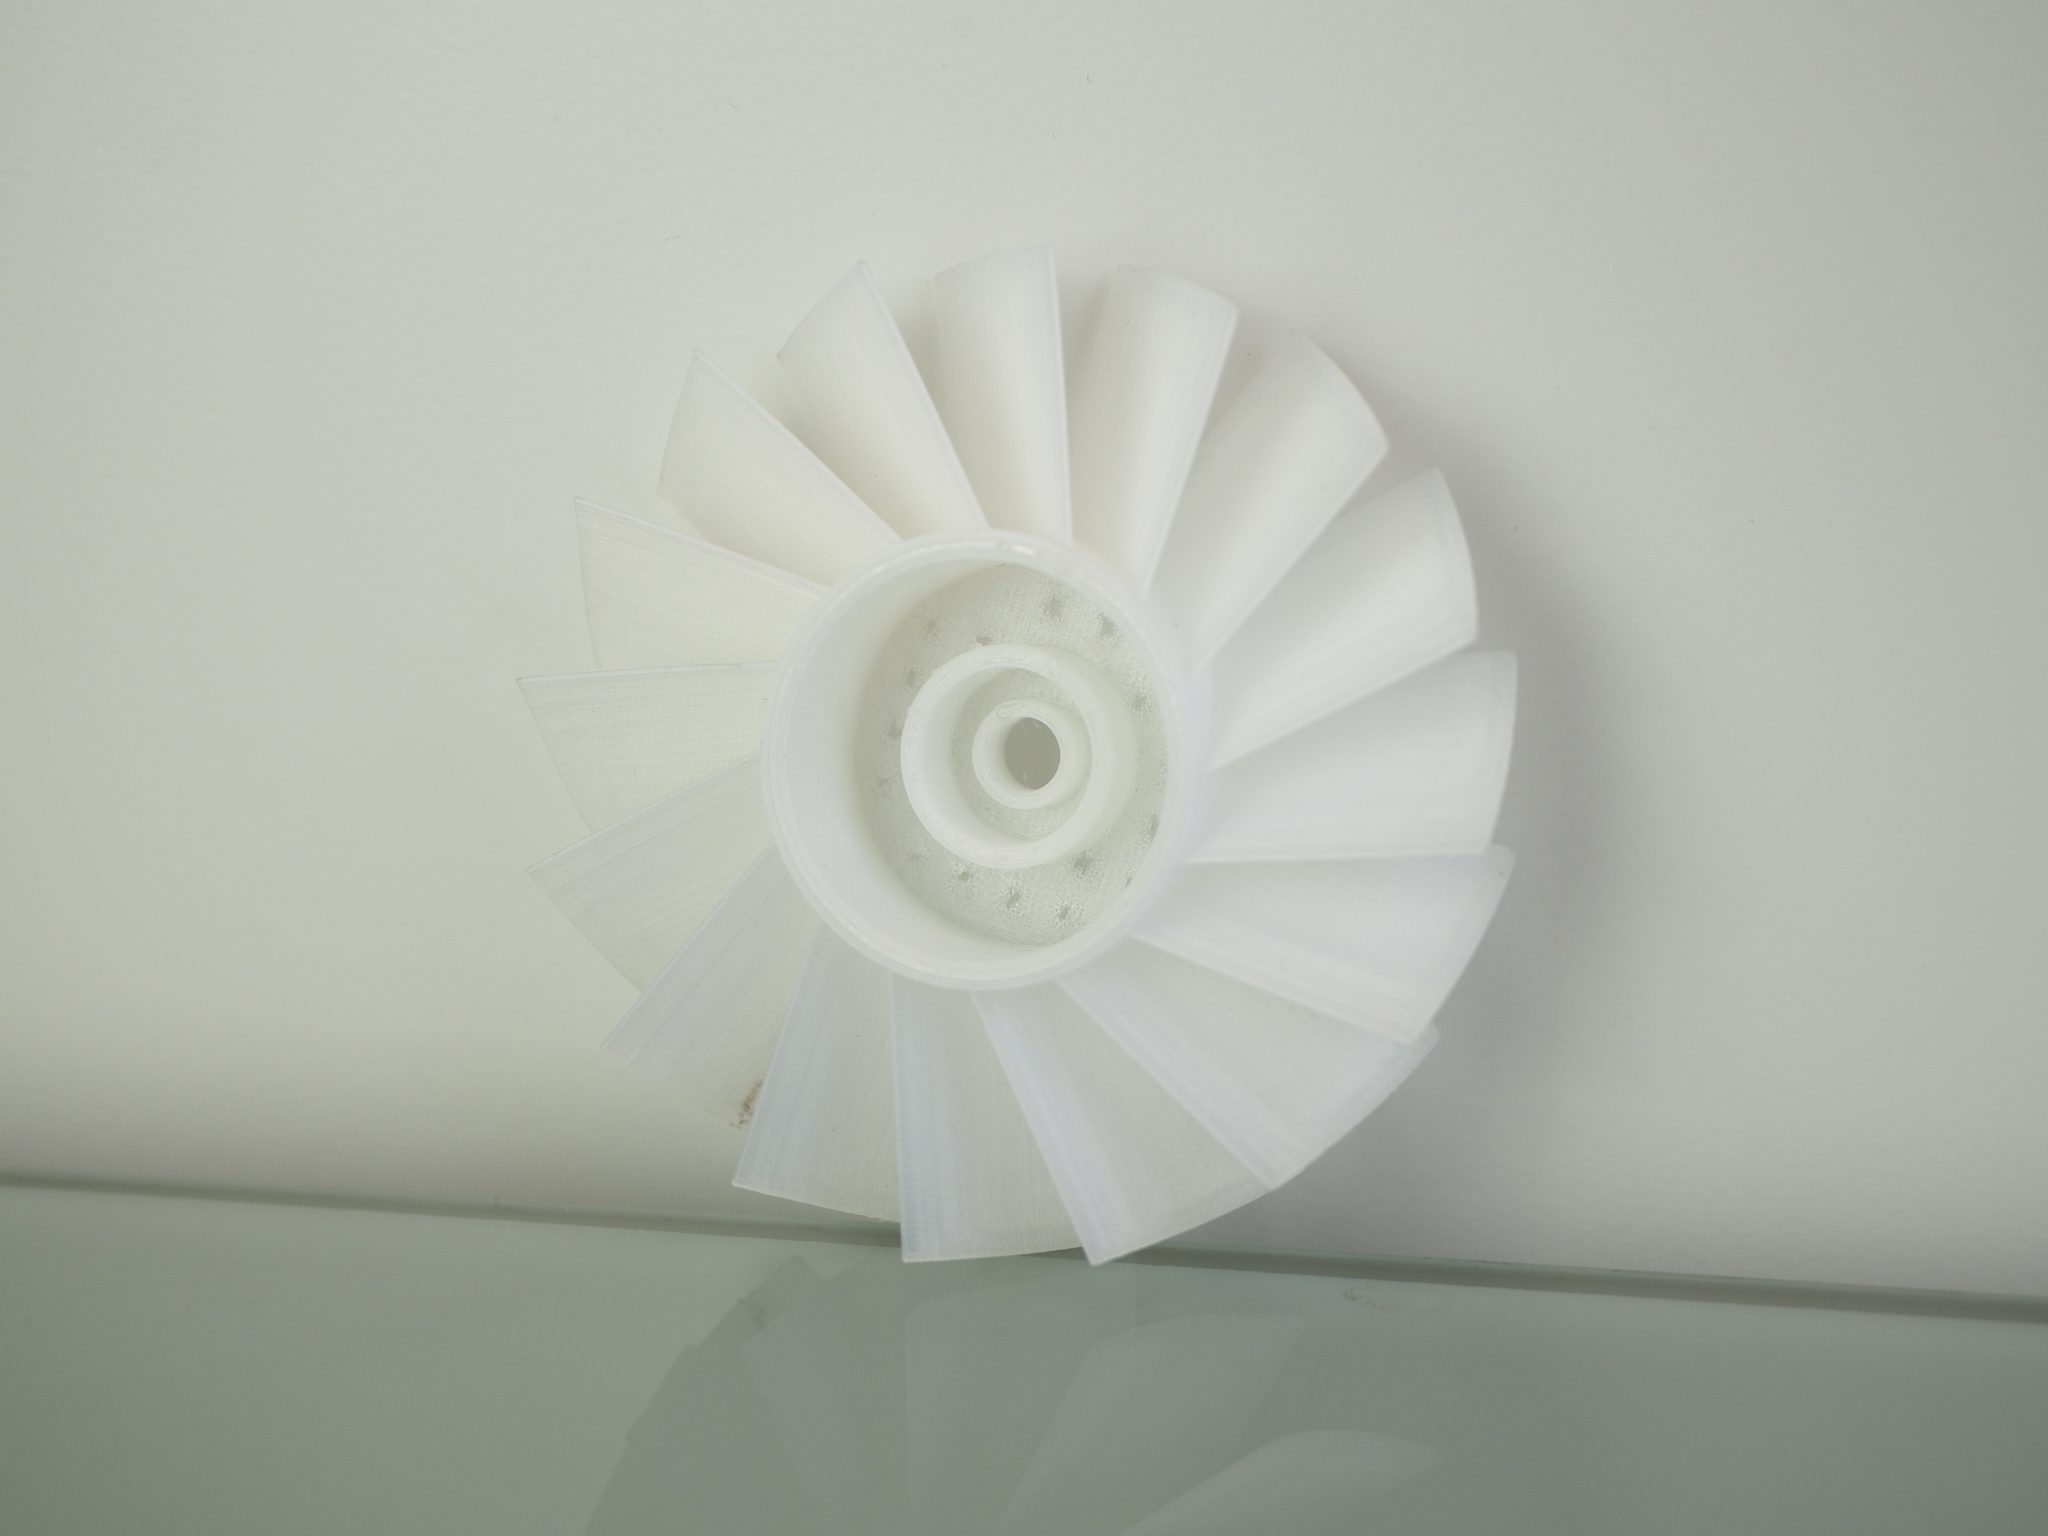 Nylon turbine test. Photo by 3D Printing Industry.